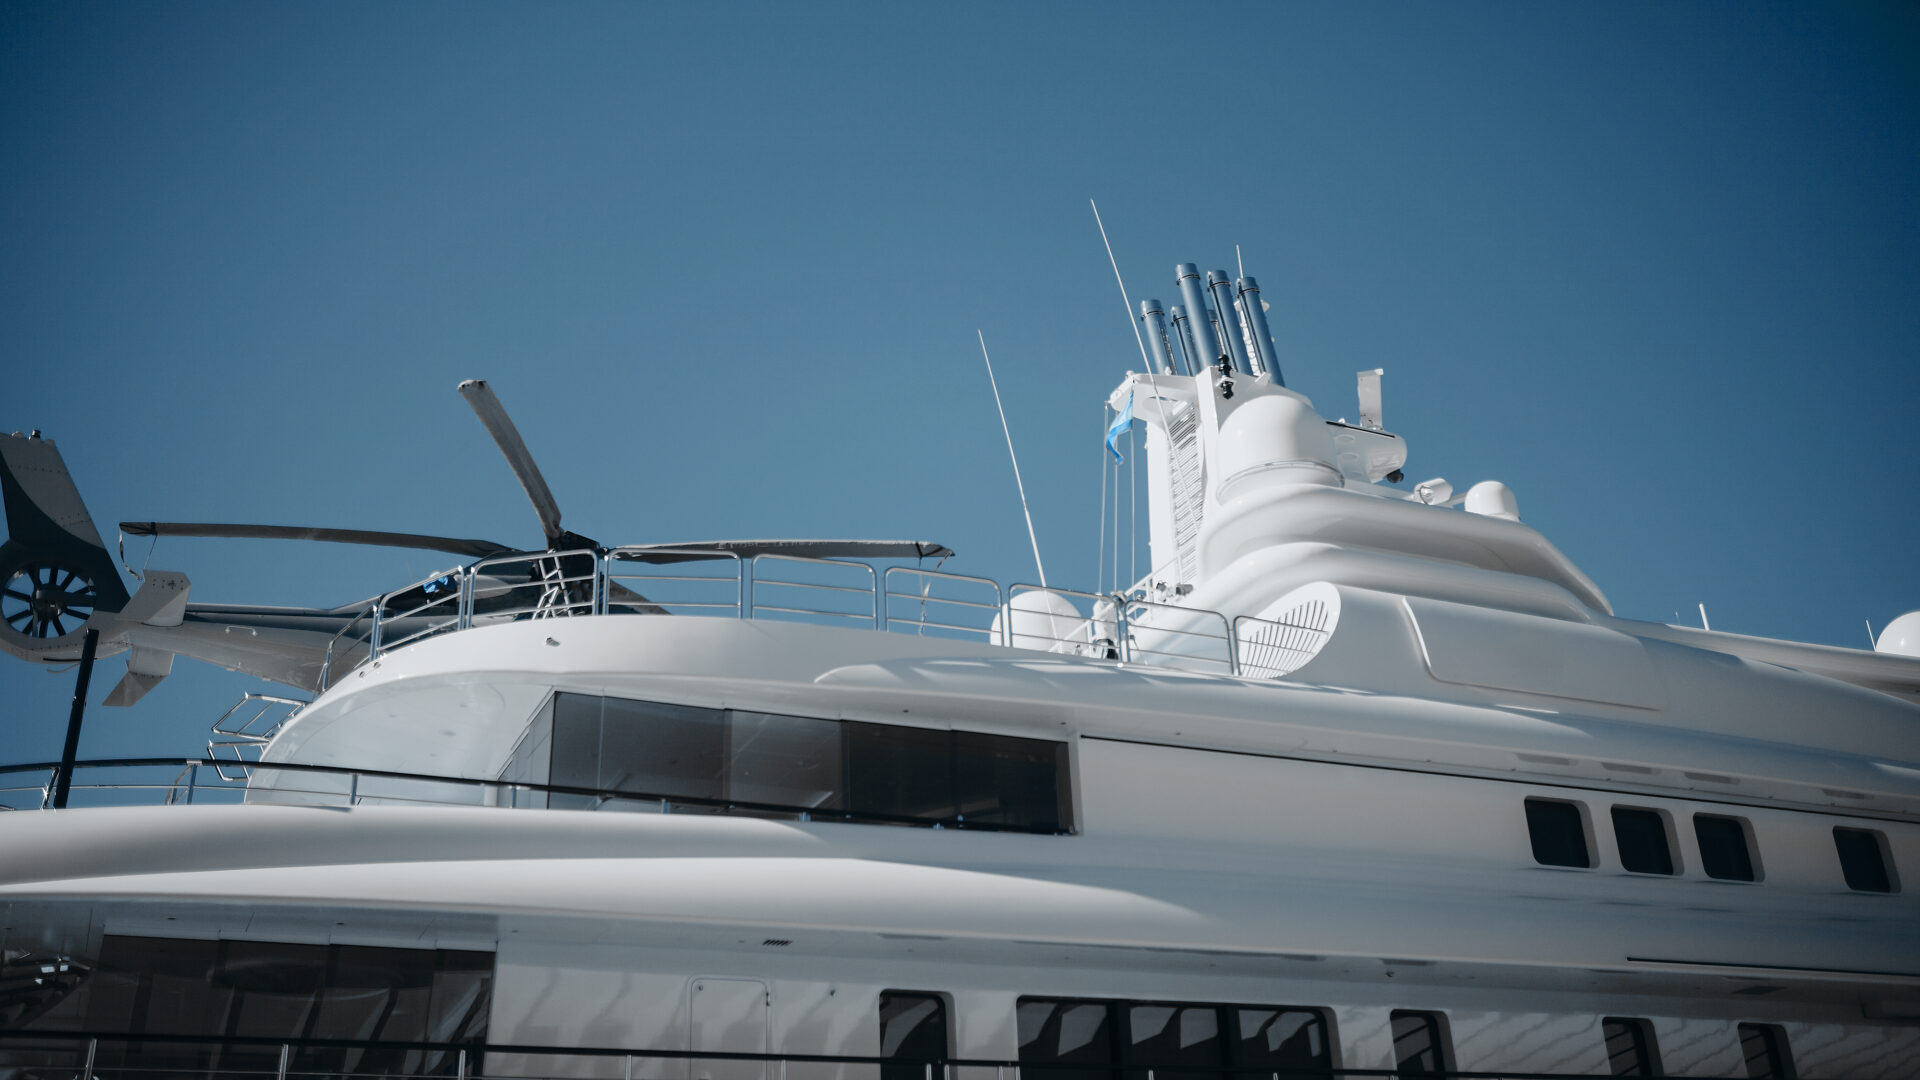 helicopter on yacht